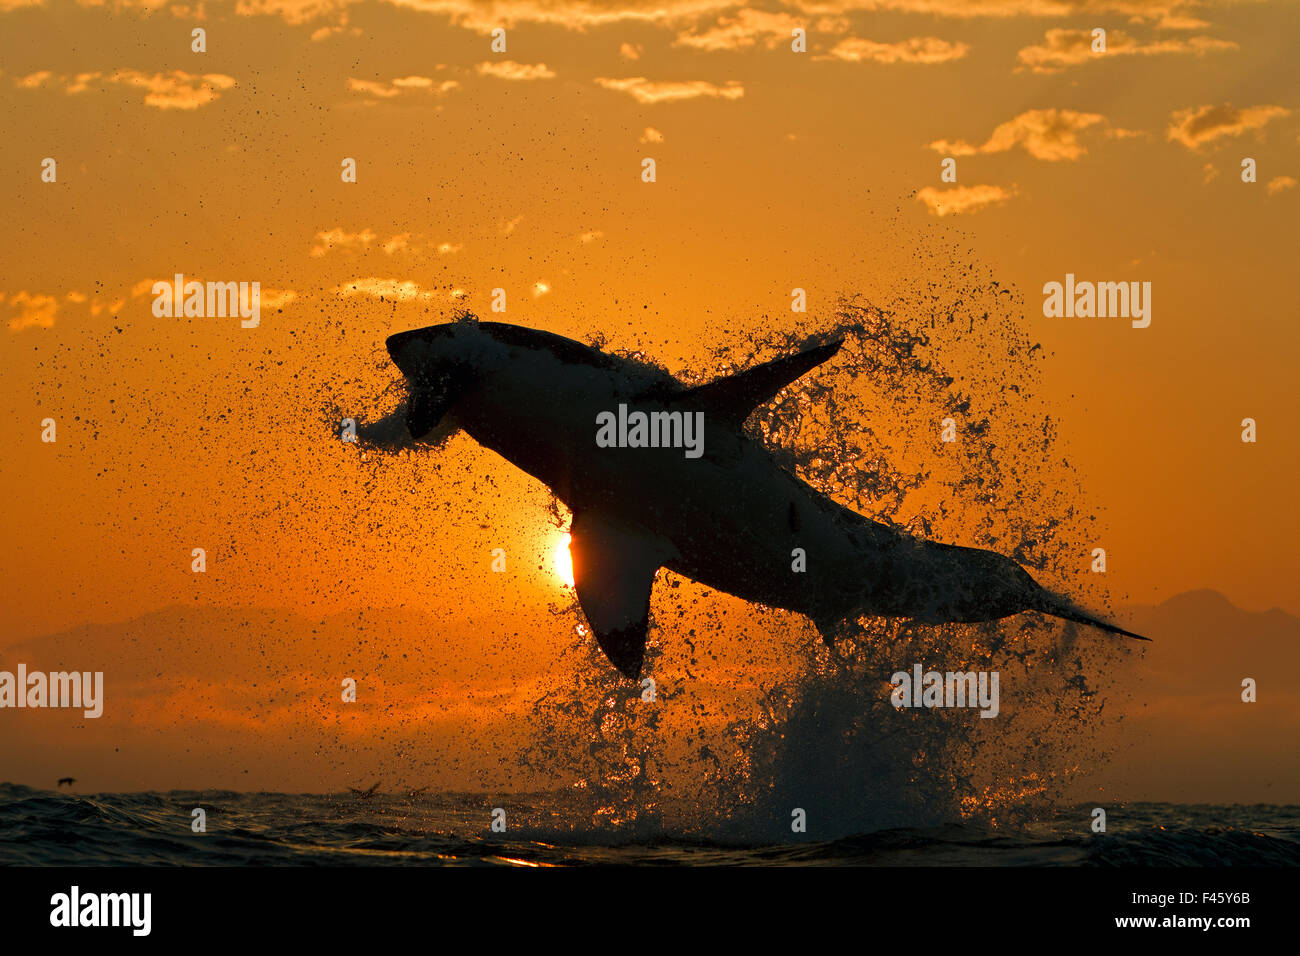 Great white shark (Carchardon carcharias) breaching on seal decoy at dawn, False Bay, South Africa - Stock Image